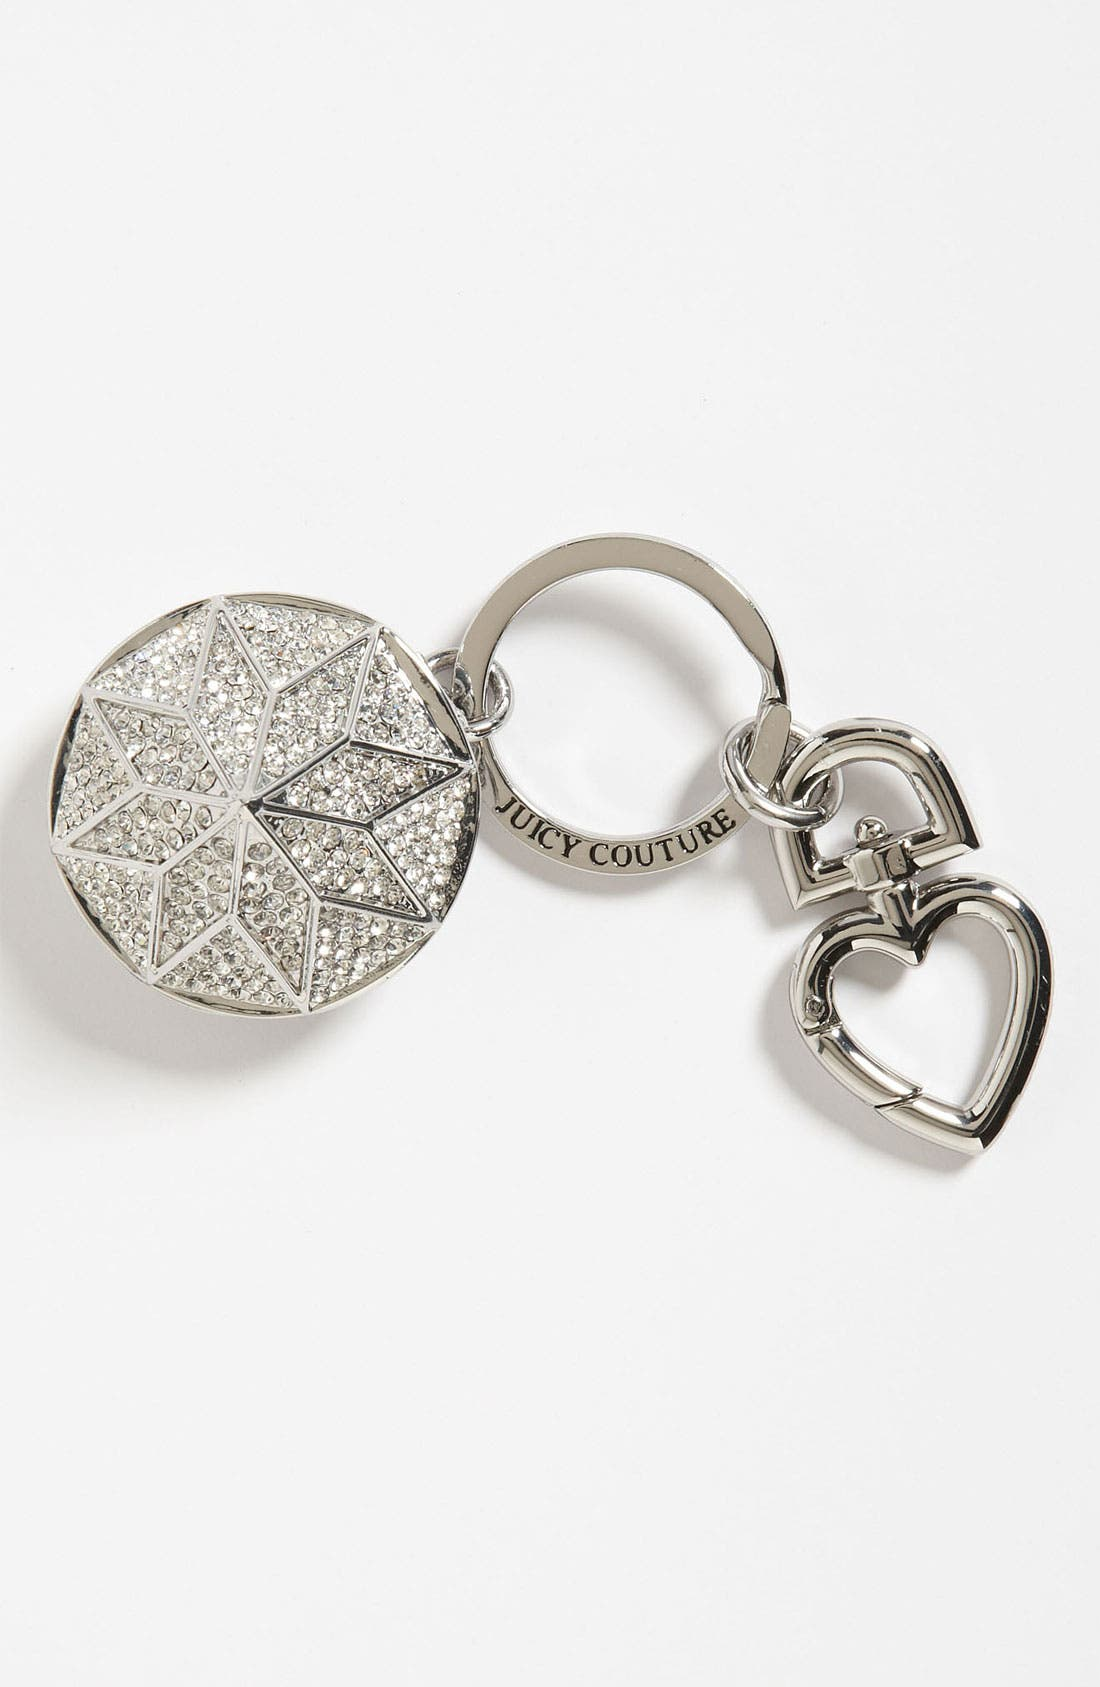 Main Image - Juicy Couture Key Ring